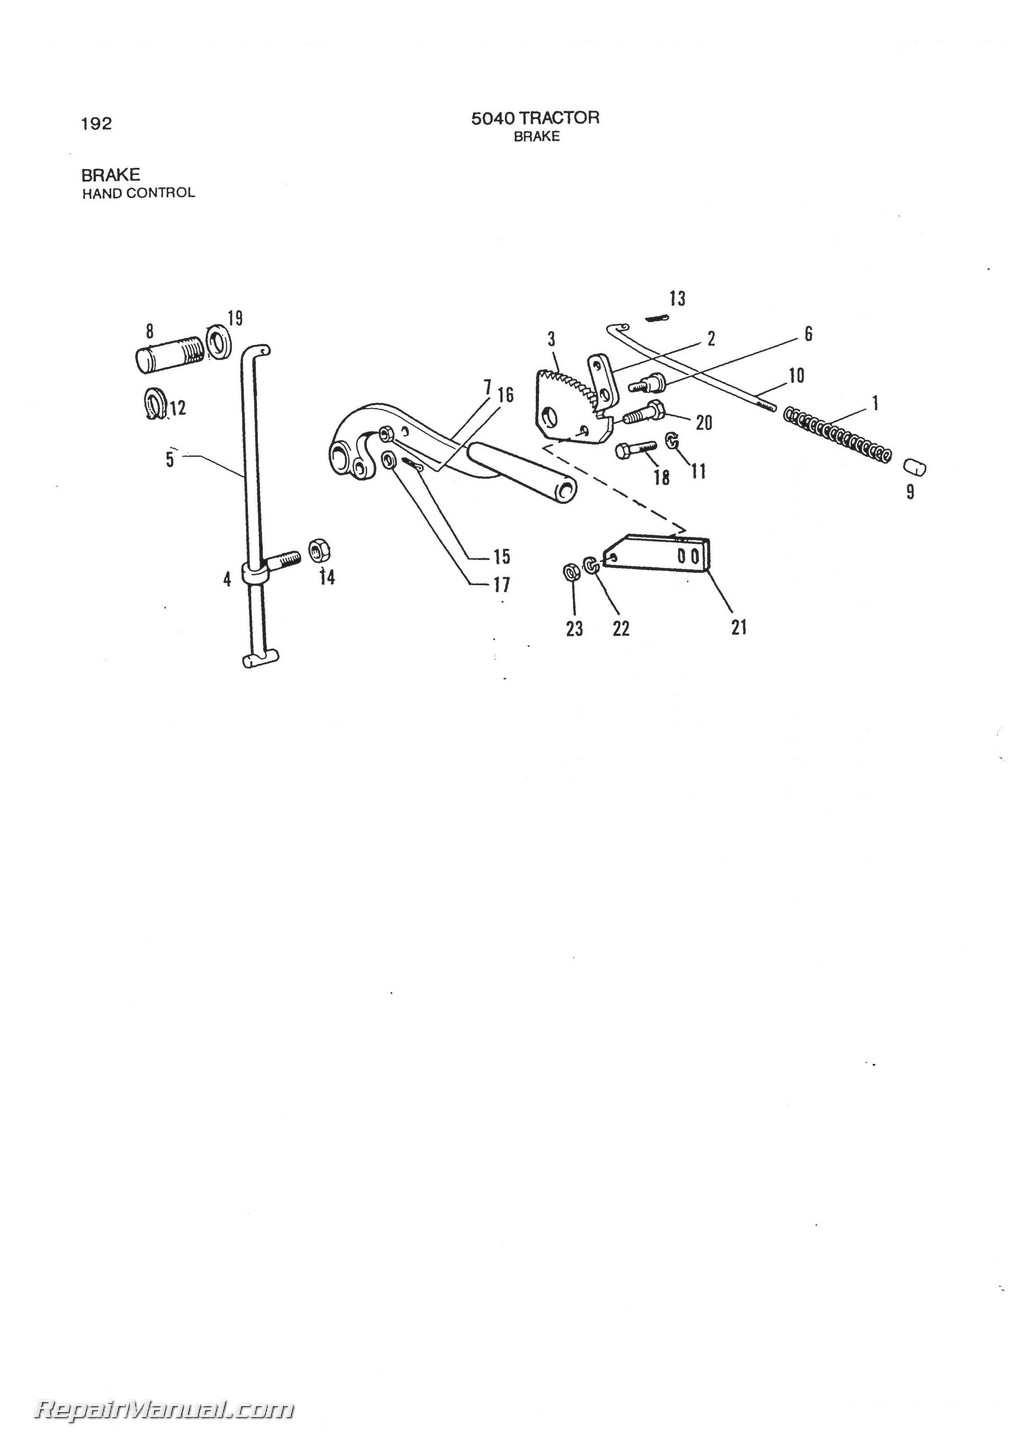 Allis Chalmers 5040 Parts Manual_Page_4 allis chalmers 5040 parts manual